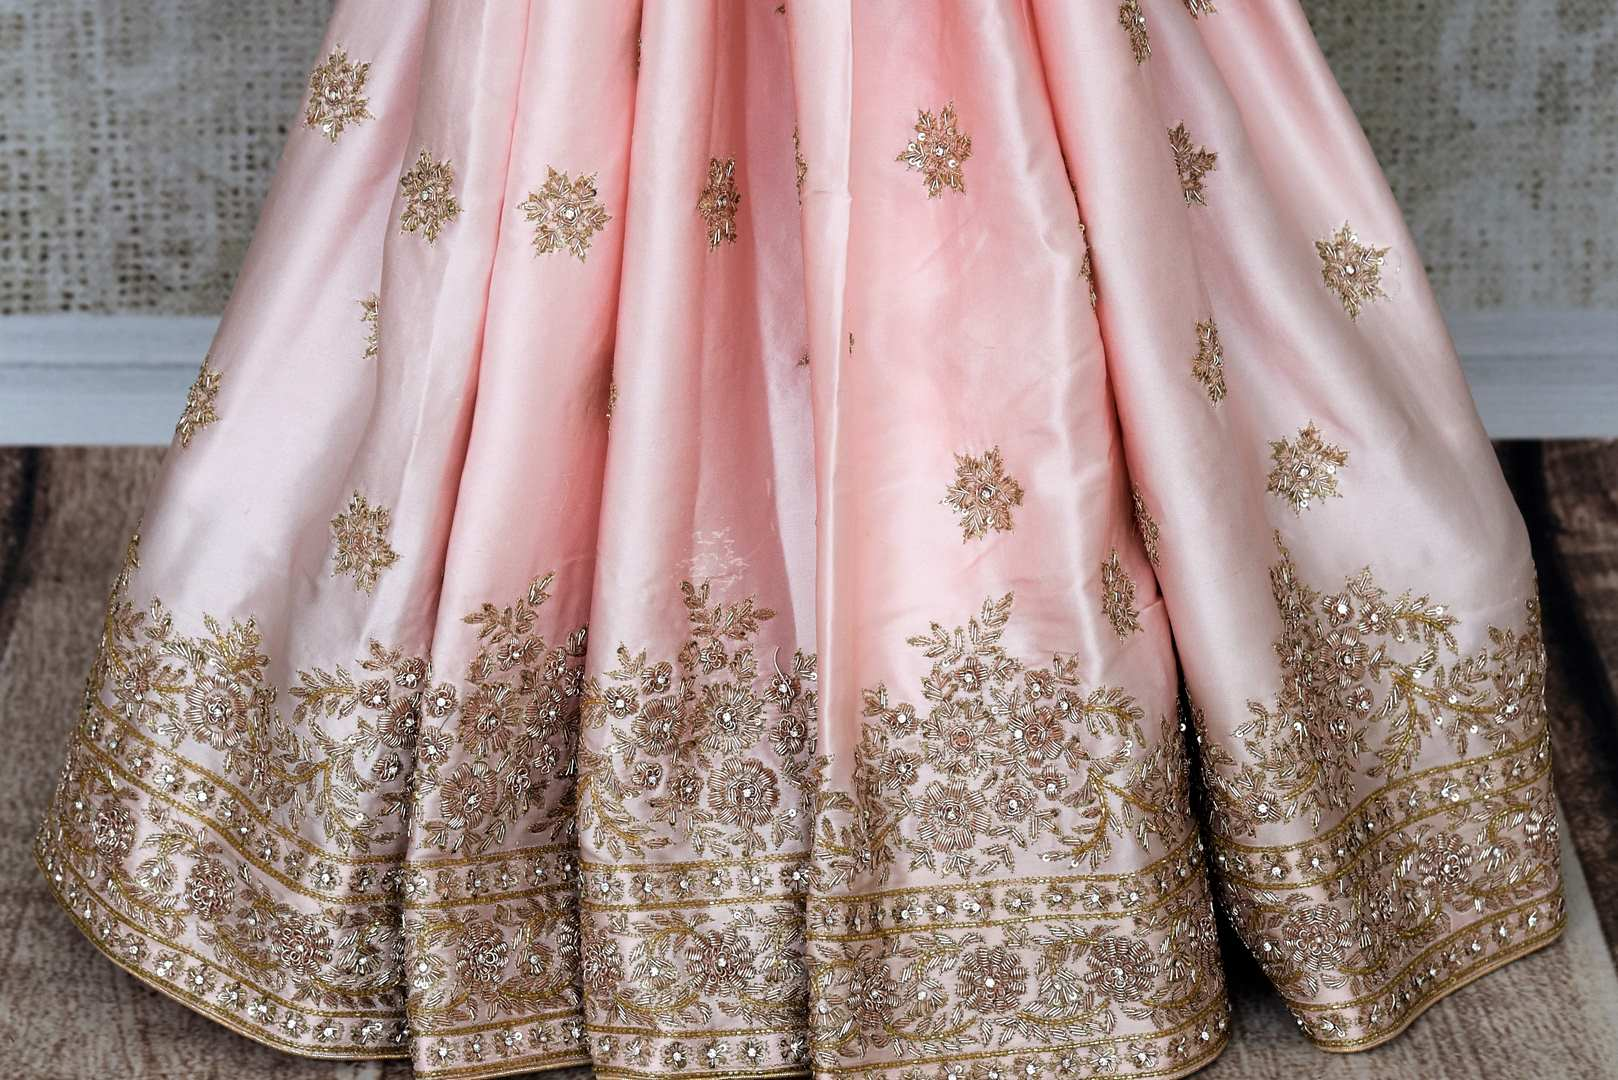 Beautiful peach hand zardozi embroidery crepe saree buy online in USA.  If you are looking for Indian designer wedding saris in USA, then Pure Elegance clothing store is your one-stop solution, shop now.-pleats